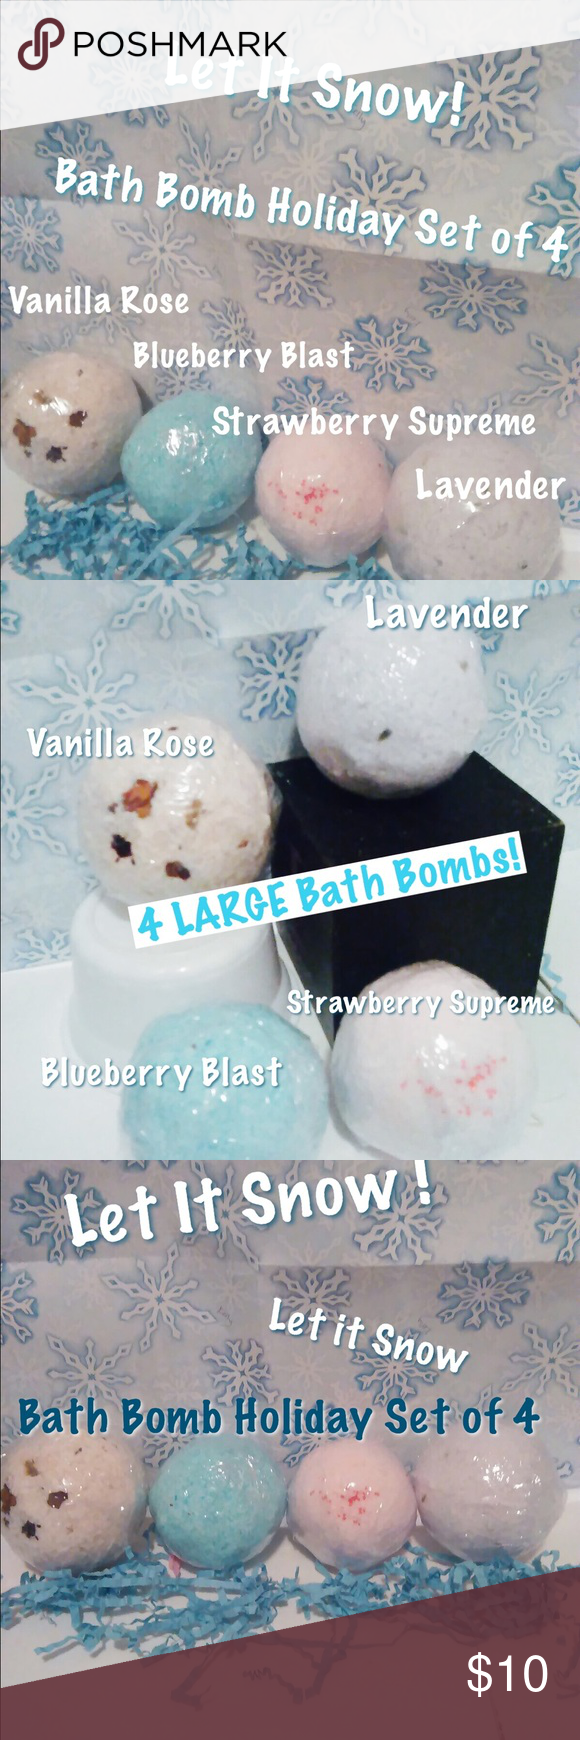 Let it Snow! holiday bath bomb set of 4 Let it Snow. Holiday Bath Bomb Set of 4. 4 large bath bombs 5 oz each. Size of a tennis ball! Blueberry blast, strawberry supreme, lavender and vanilla rose. Drop in bath for soft smooth skin. Handmade with special combination of skin nourishing oils to restore moisture and softness to dry skin. Makes a beautiful holiday gift. #bathbombs#bathtime#makeup#skincare#pink#holidaygifts#handmade#shower#dryskin Makeup